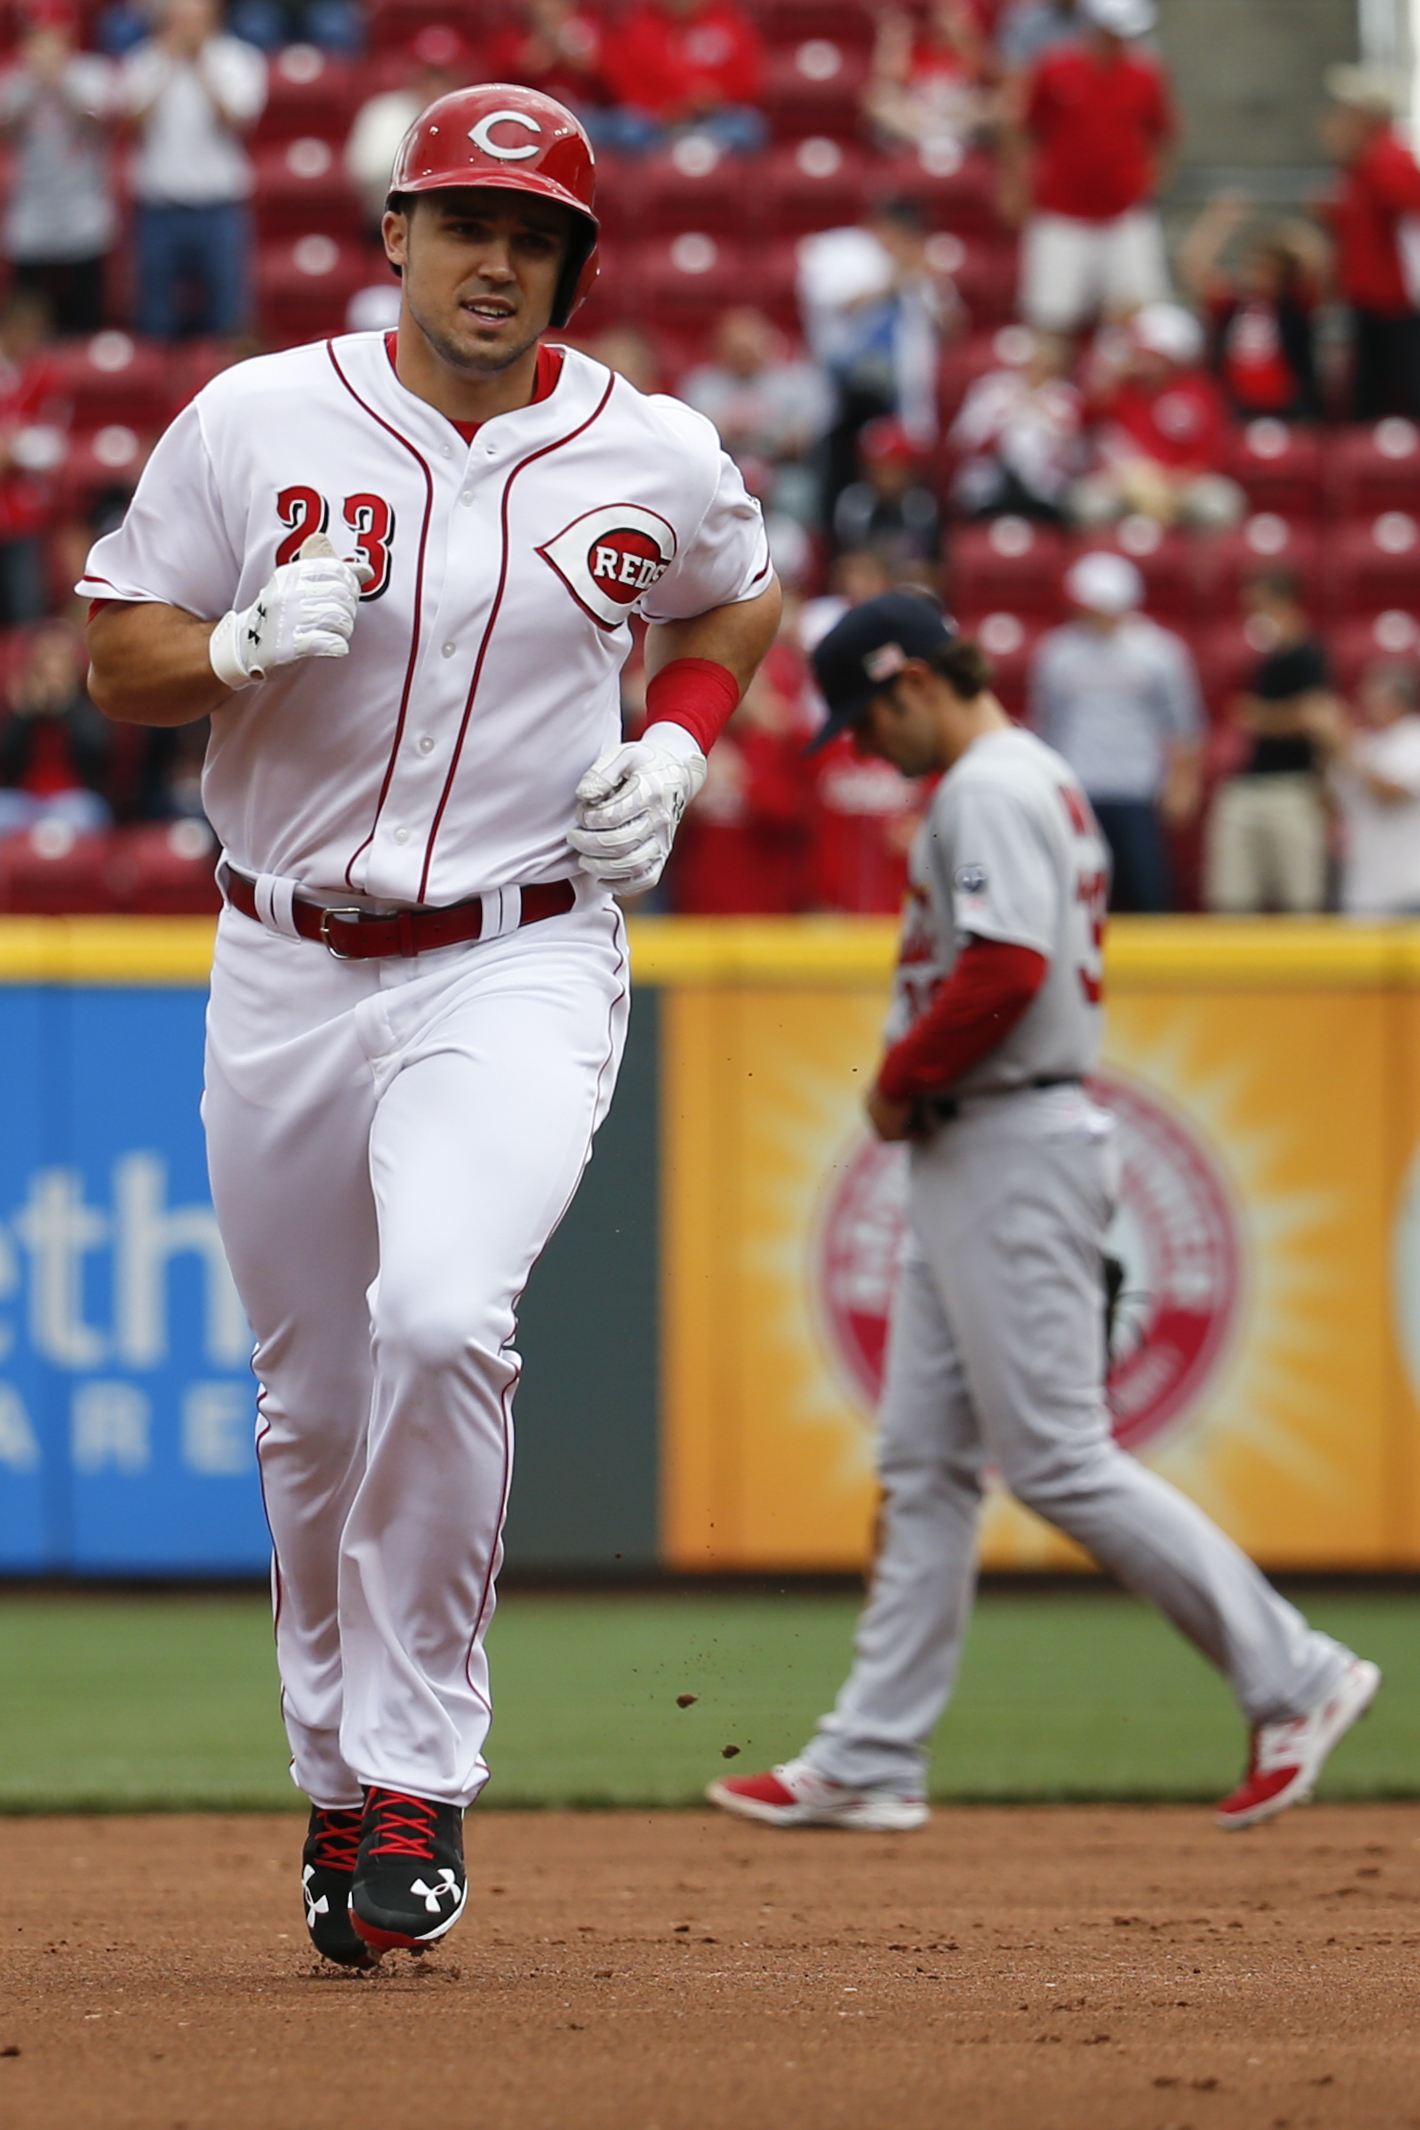 Cincinnati Reds' Adam Duvall rounds the bases after hitting a two-run home run off St. Louis Cardinals relief pitcher Jonathan Broxton in the eighth inning of a resumed baseball game, Saturday, Sept. 12, 2015, in Cincinnati. The game was resumed in the to